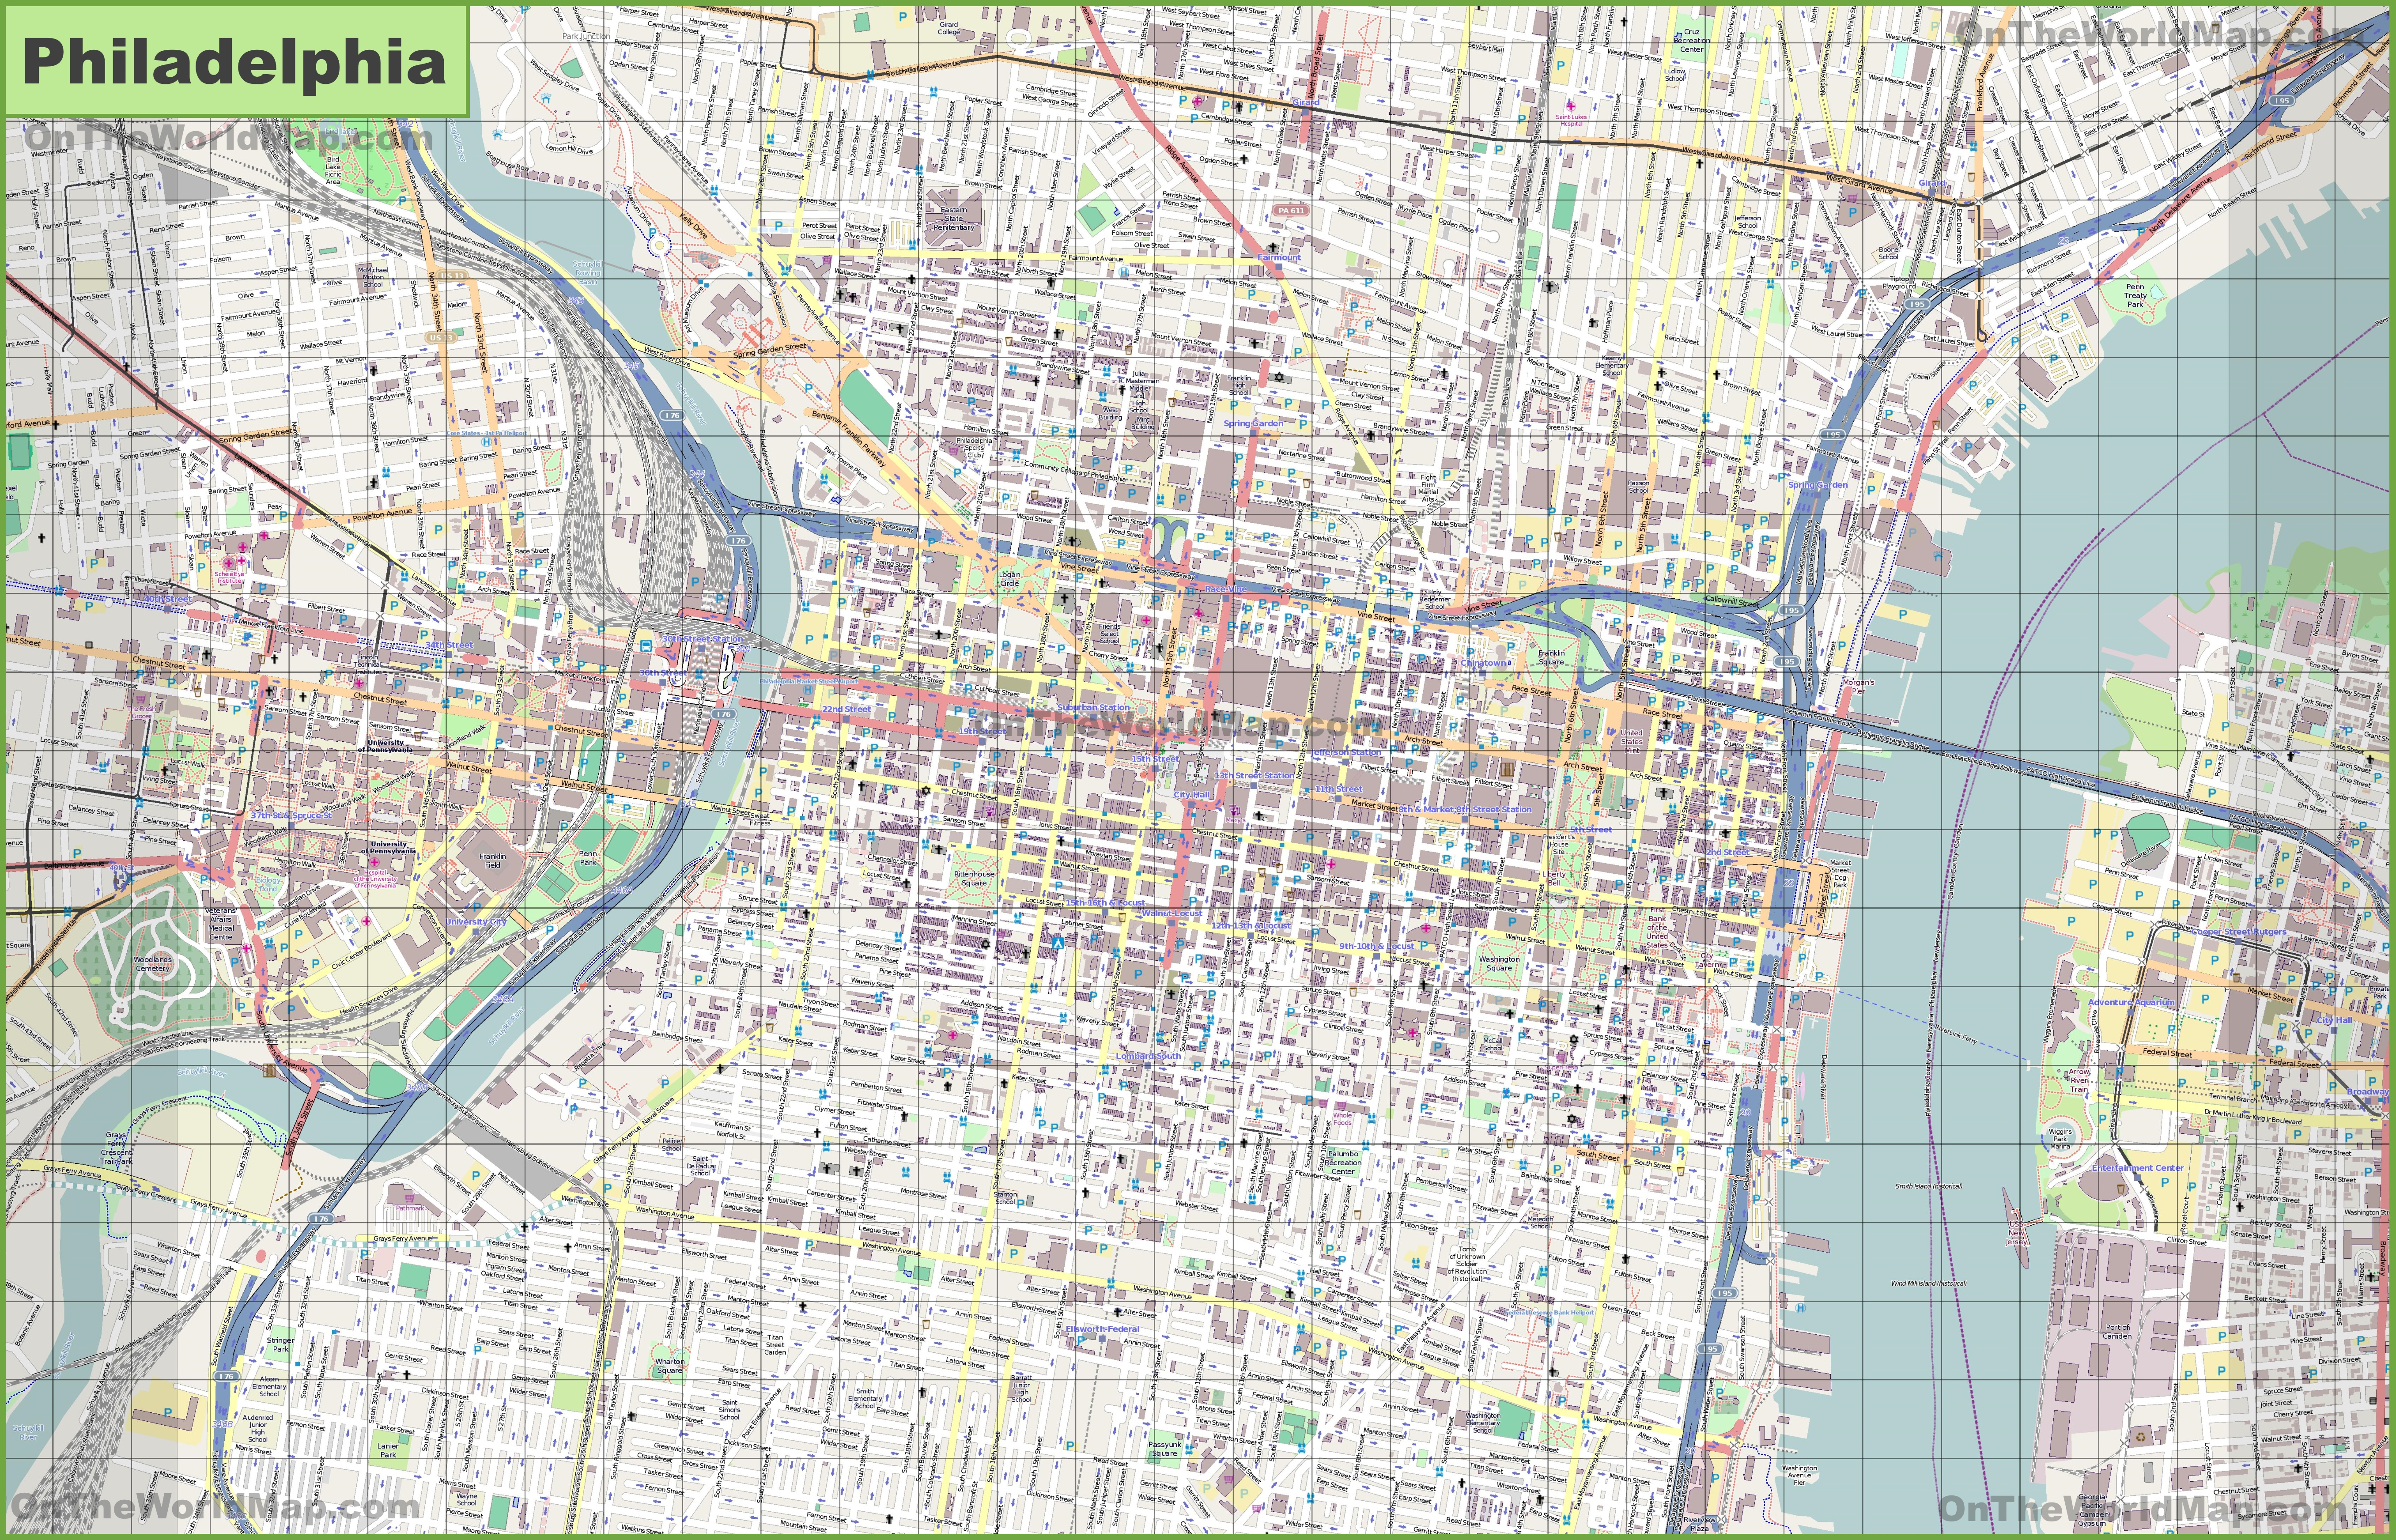 Large Detailed Street Map Of Philadelphia - Philadelphia Street Map Printable